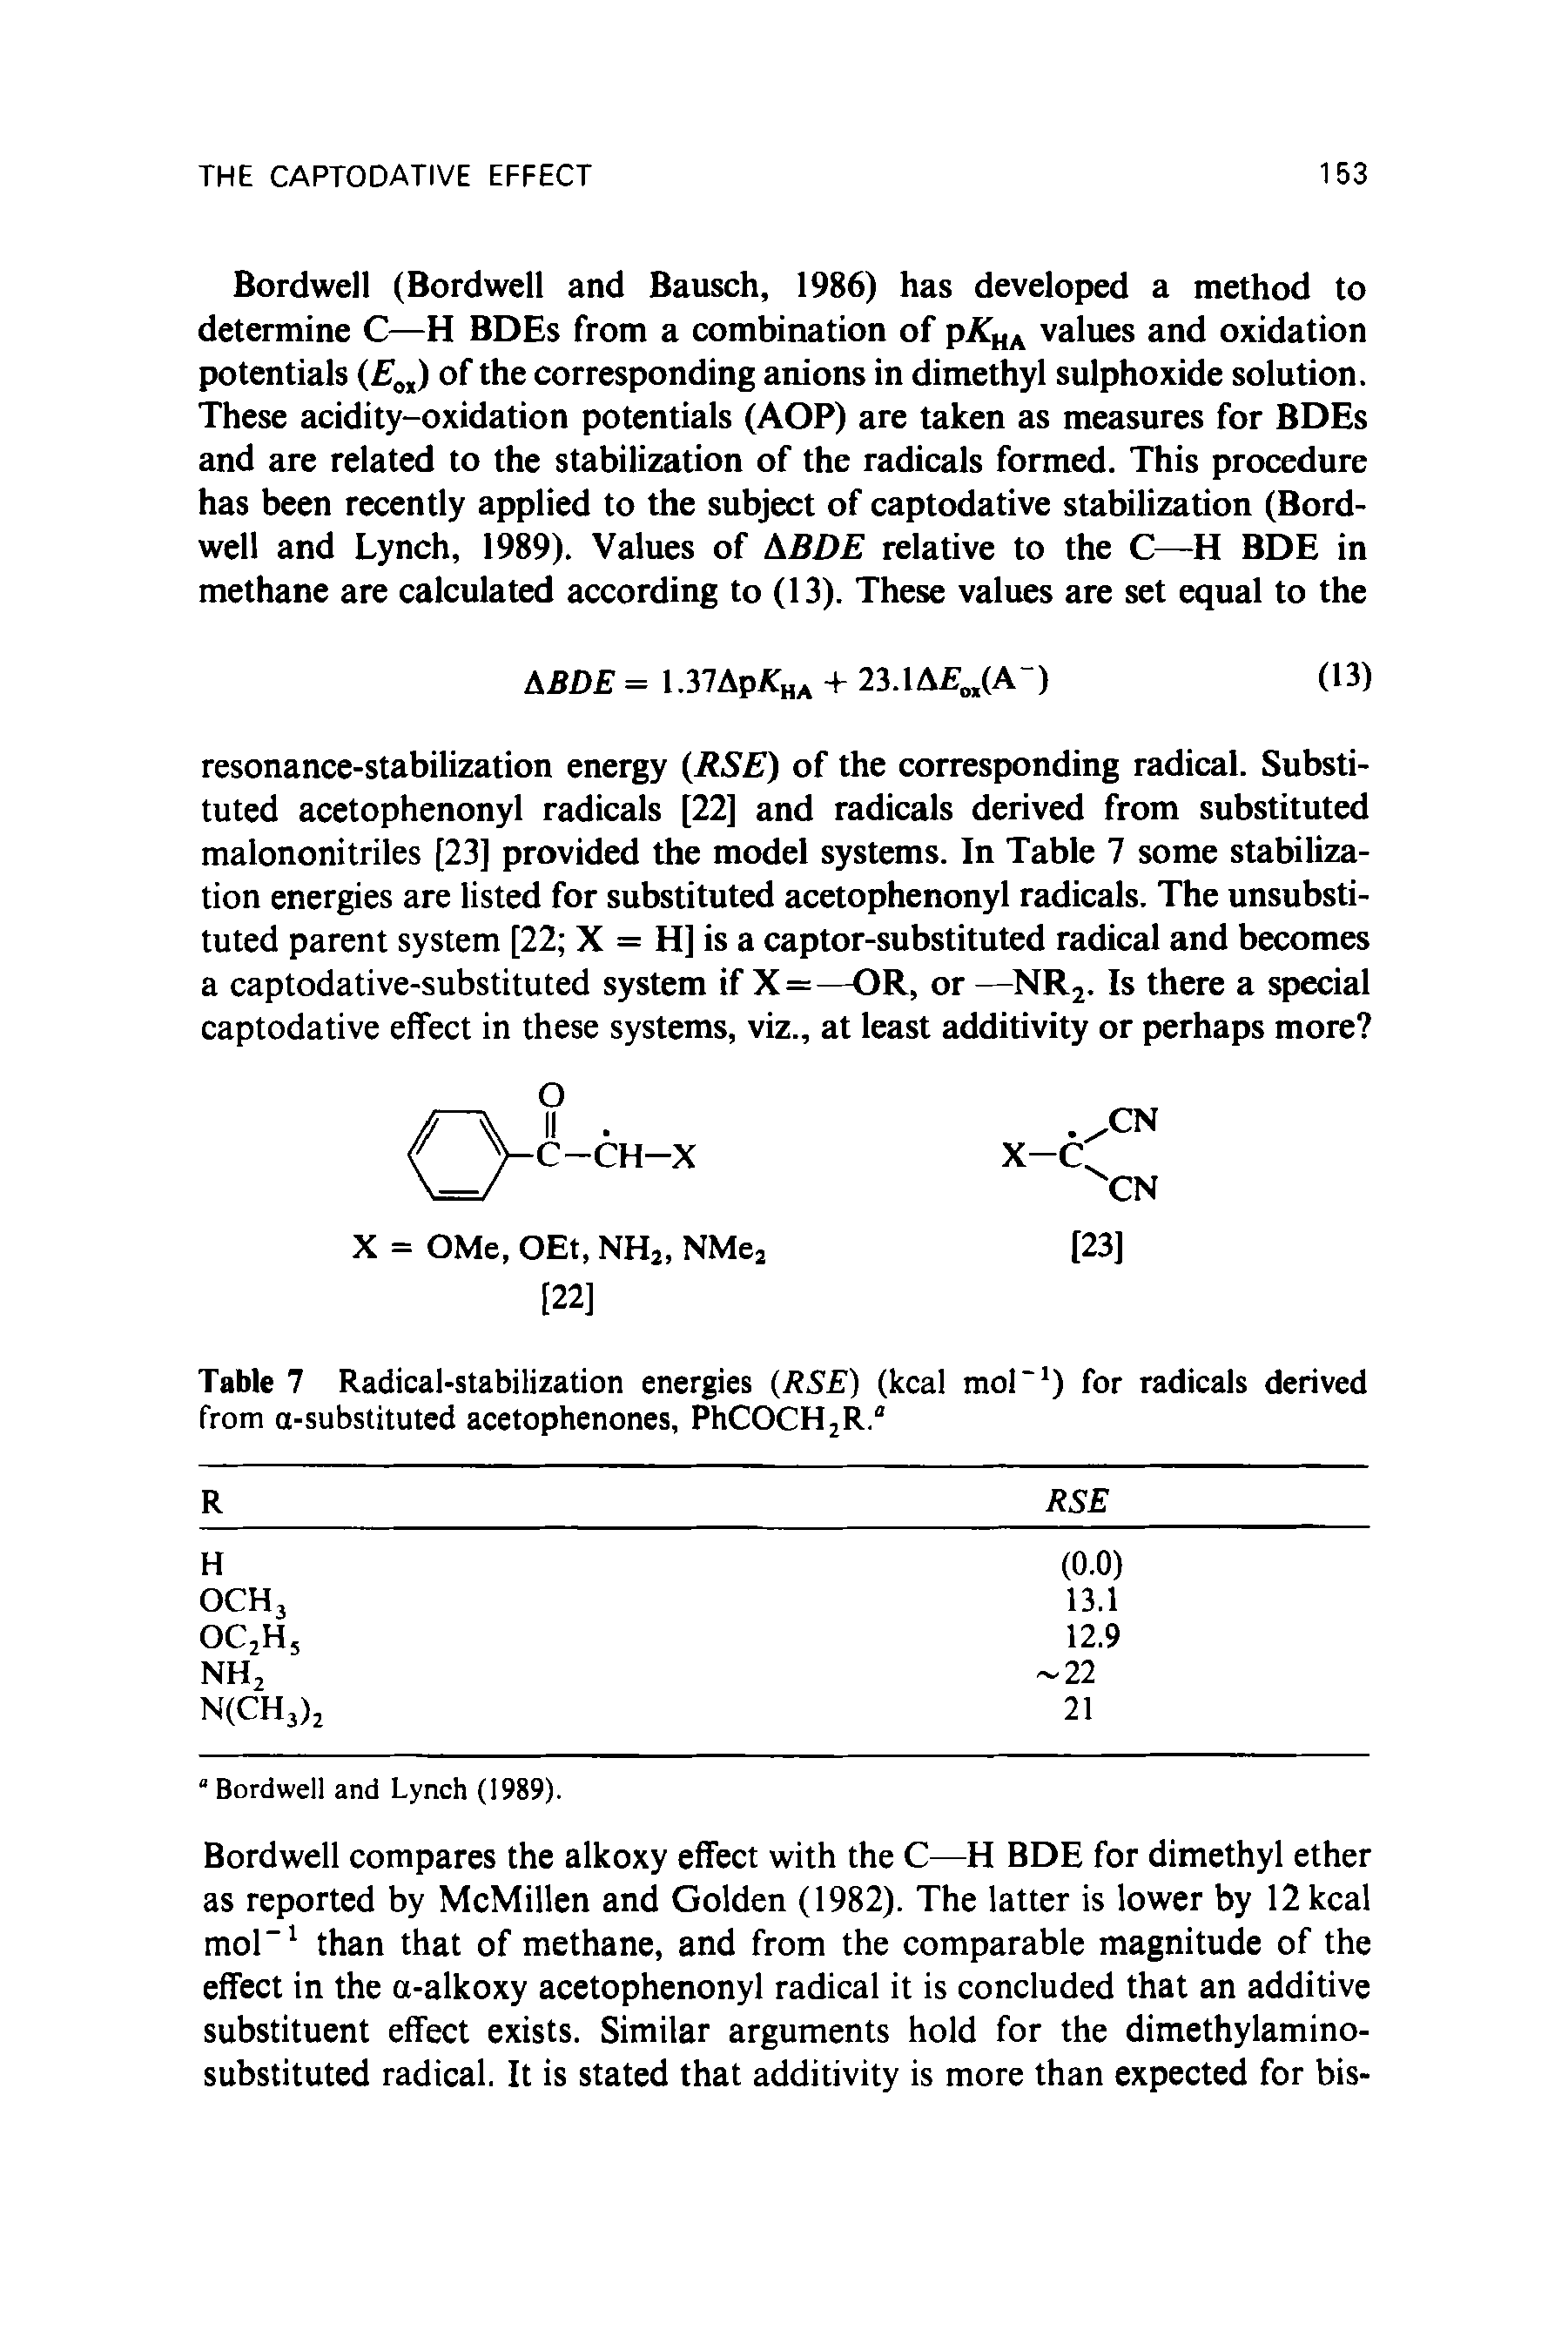 "Table 7 Radical-stabilization energies (RSE) (kcal mol ) for radicals derived from a-substituted acetophenones, PhCOCHjR.""..."